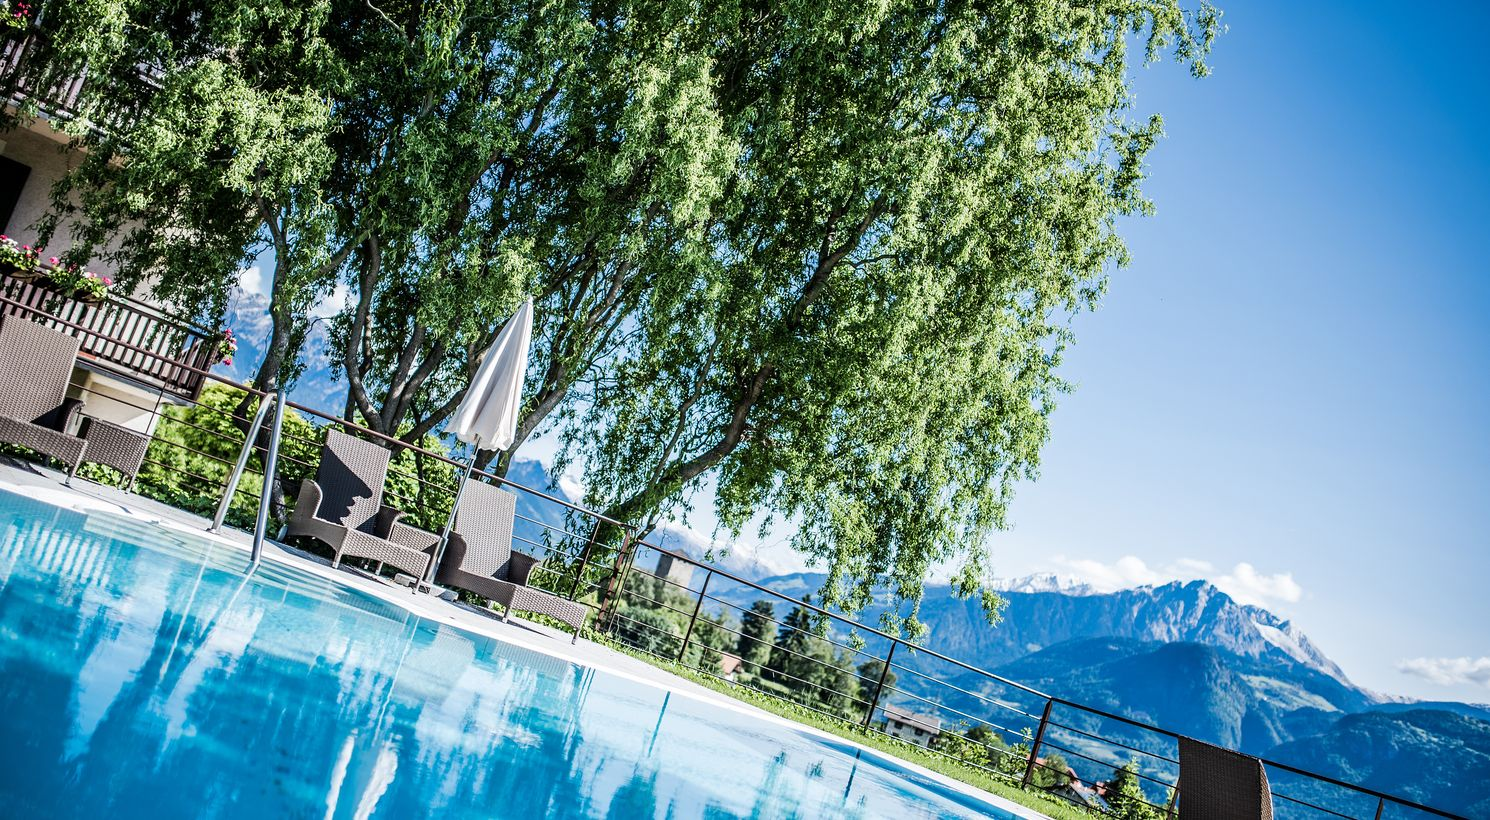 Accommodation Foiana Lana with outdoor pool